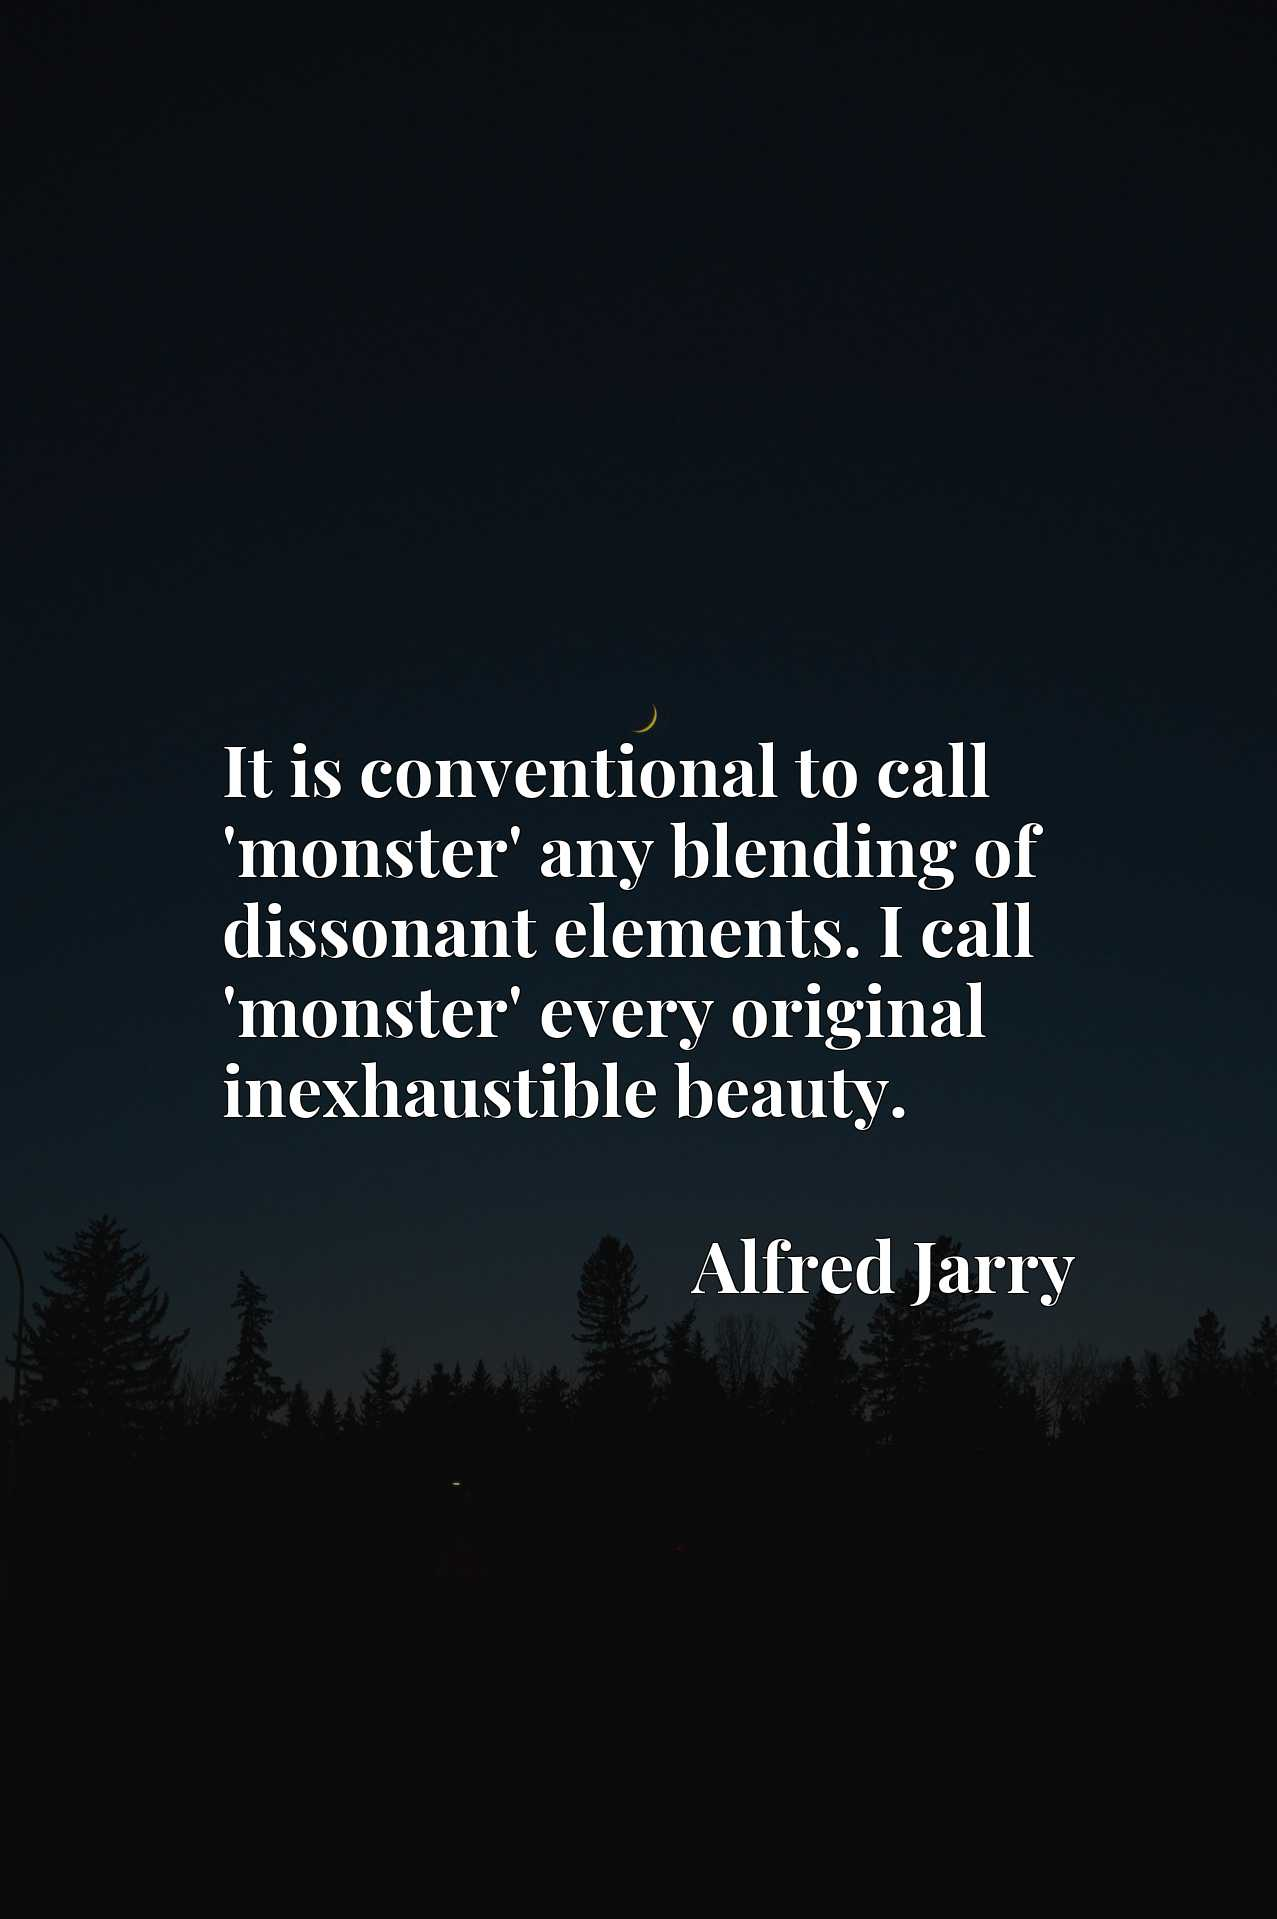 It is conventional to call 'monster' any blending of dissonant elements. I call 'monster' every original inexhaustible beauty.